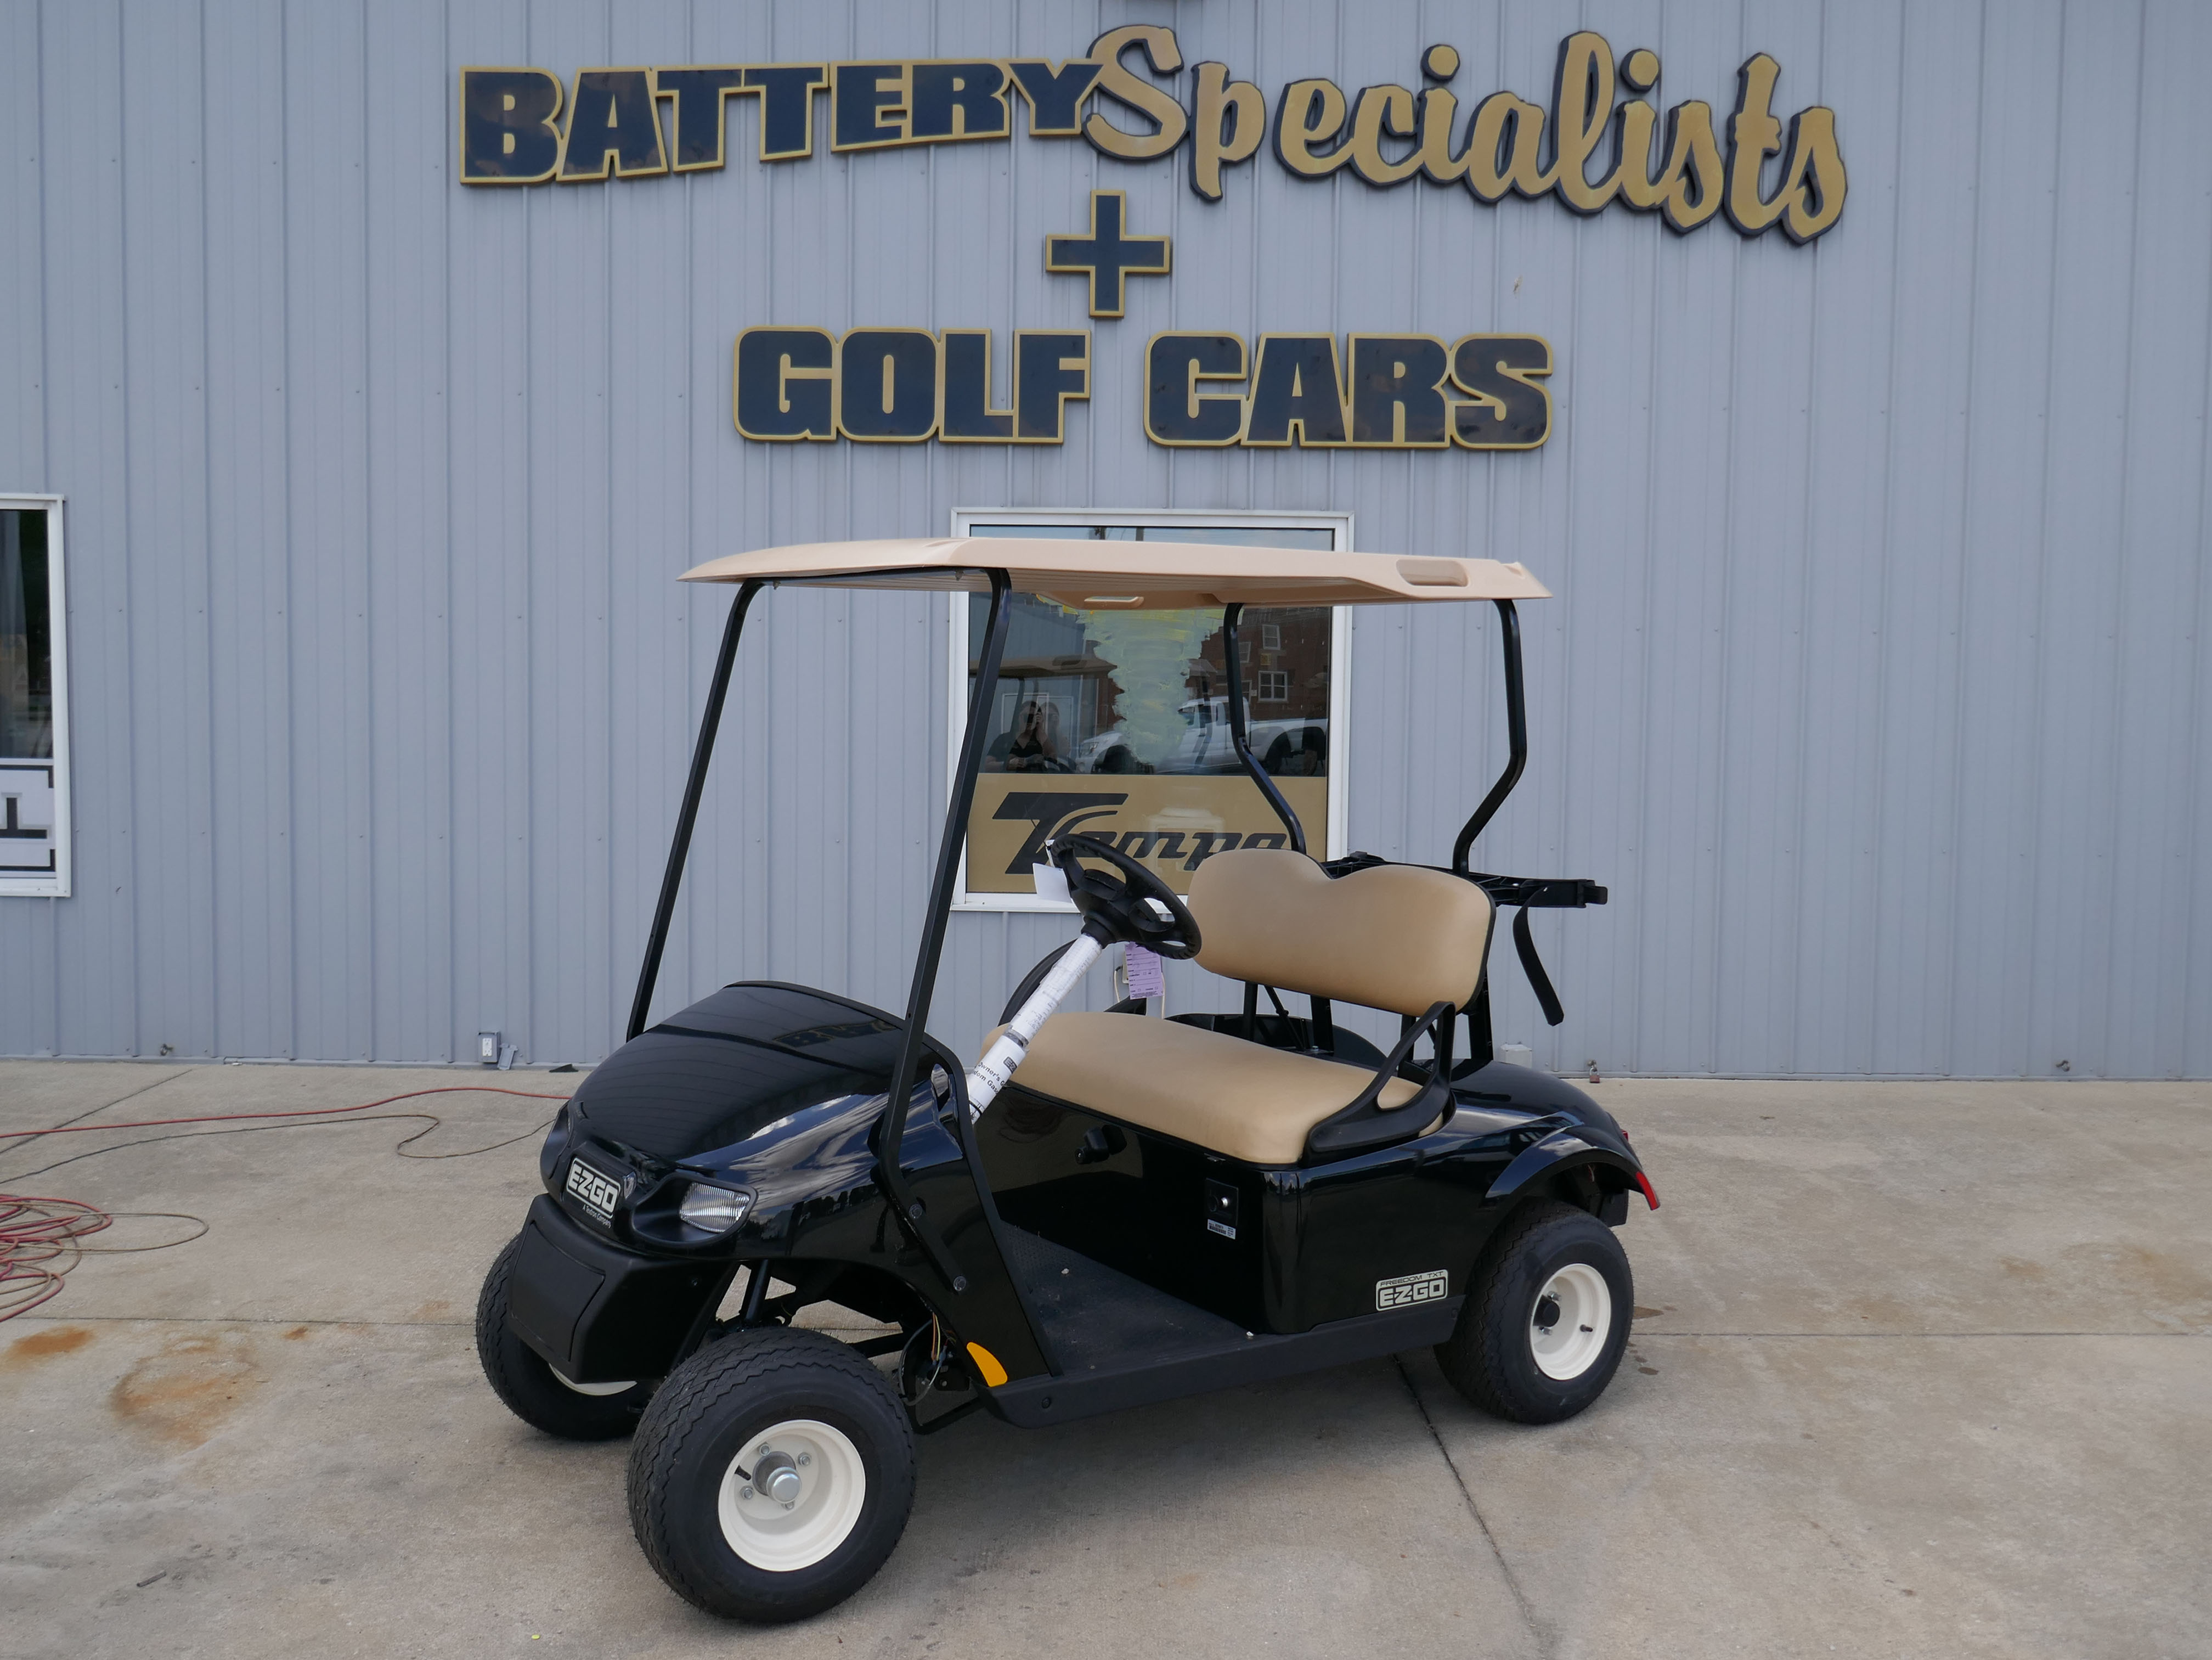 2018 PLATINUM EZGO Electric Golf Cart $TBD